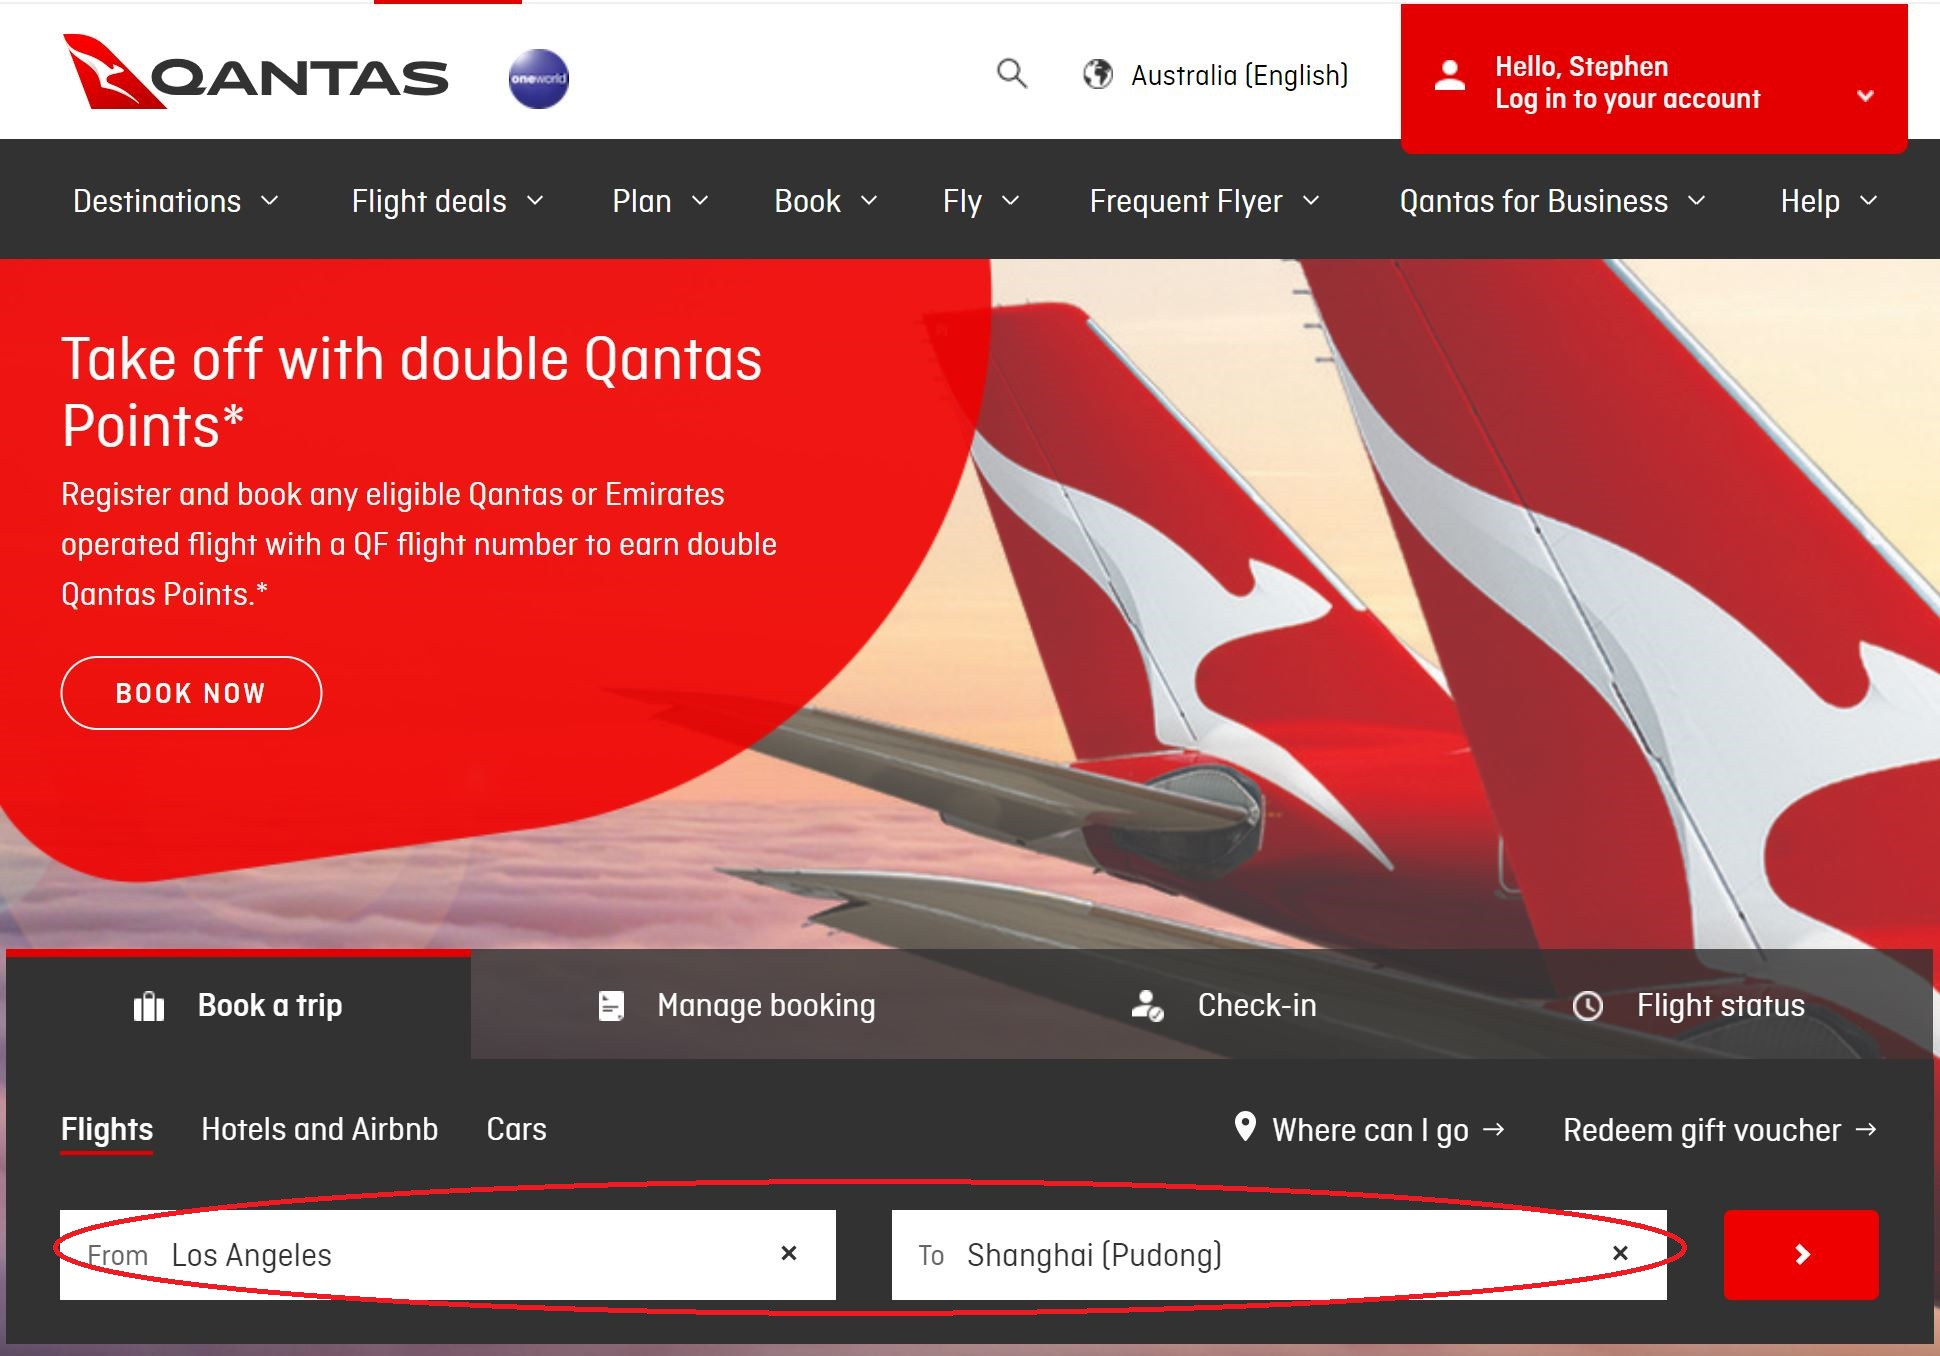 The Best Ways to Search for Oneworld Award Availability